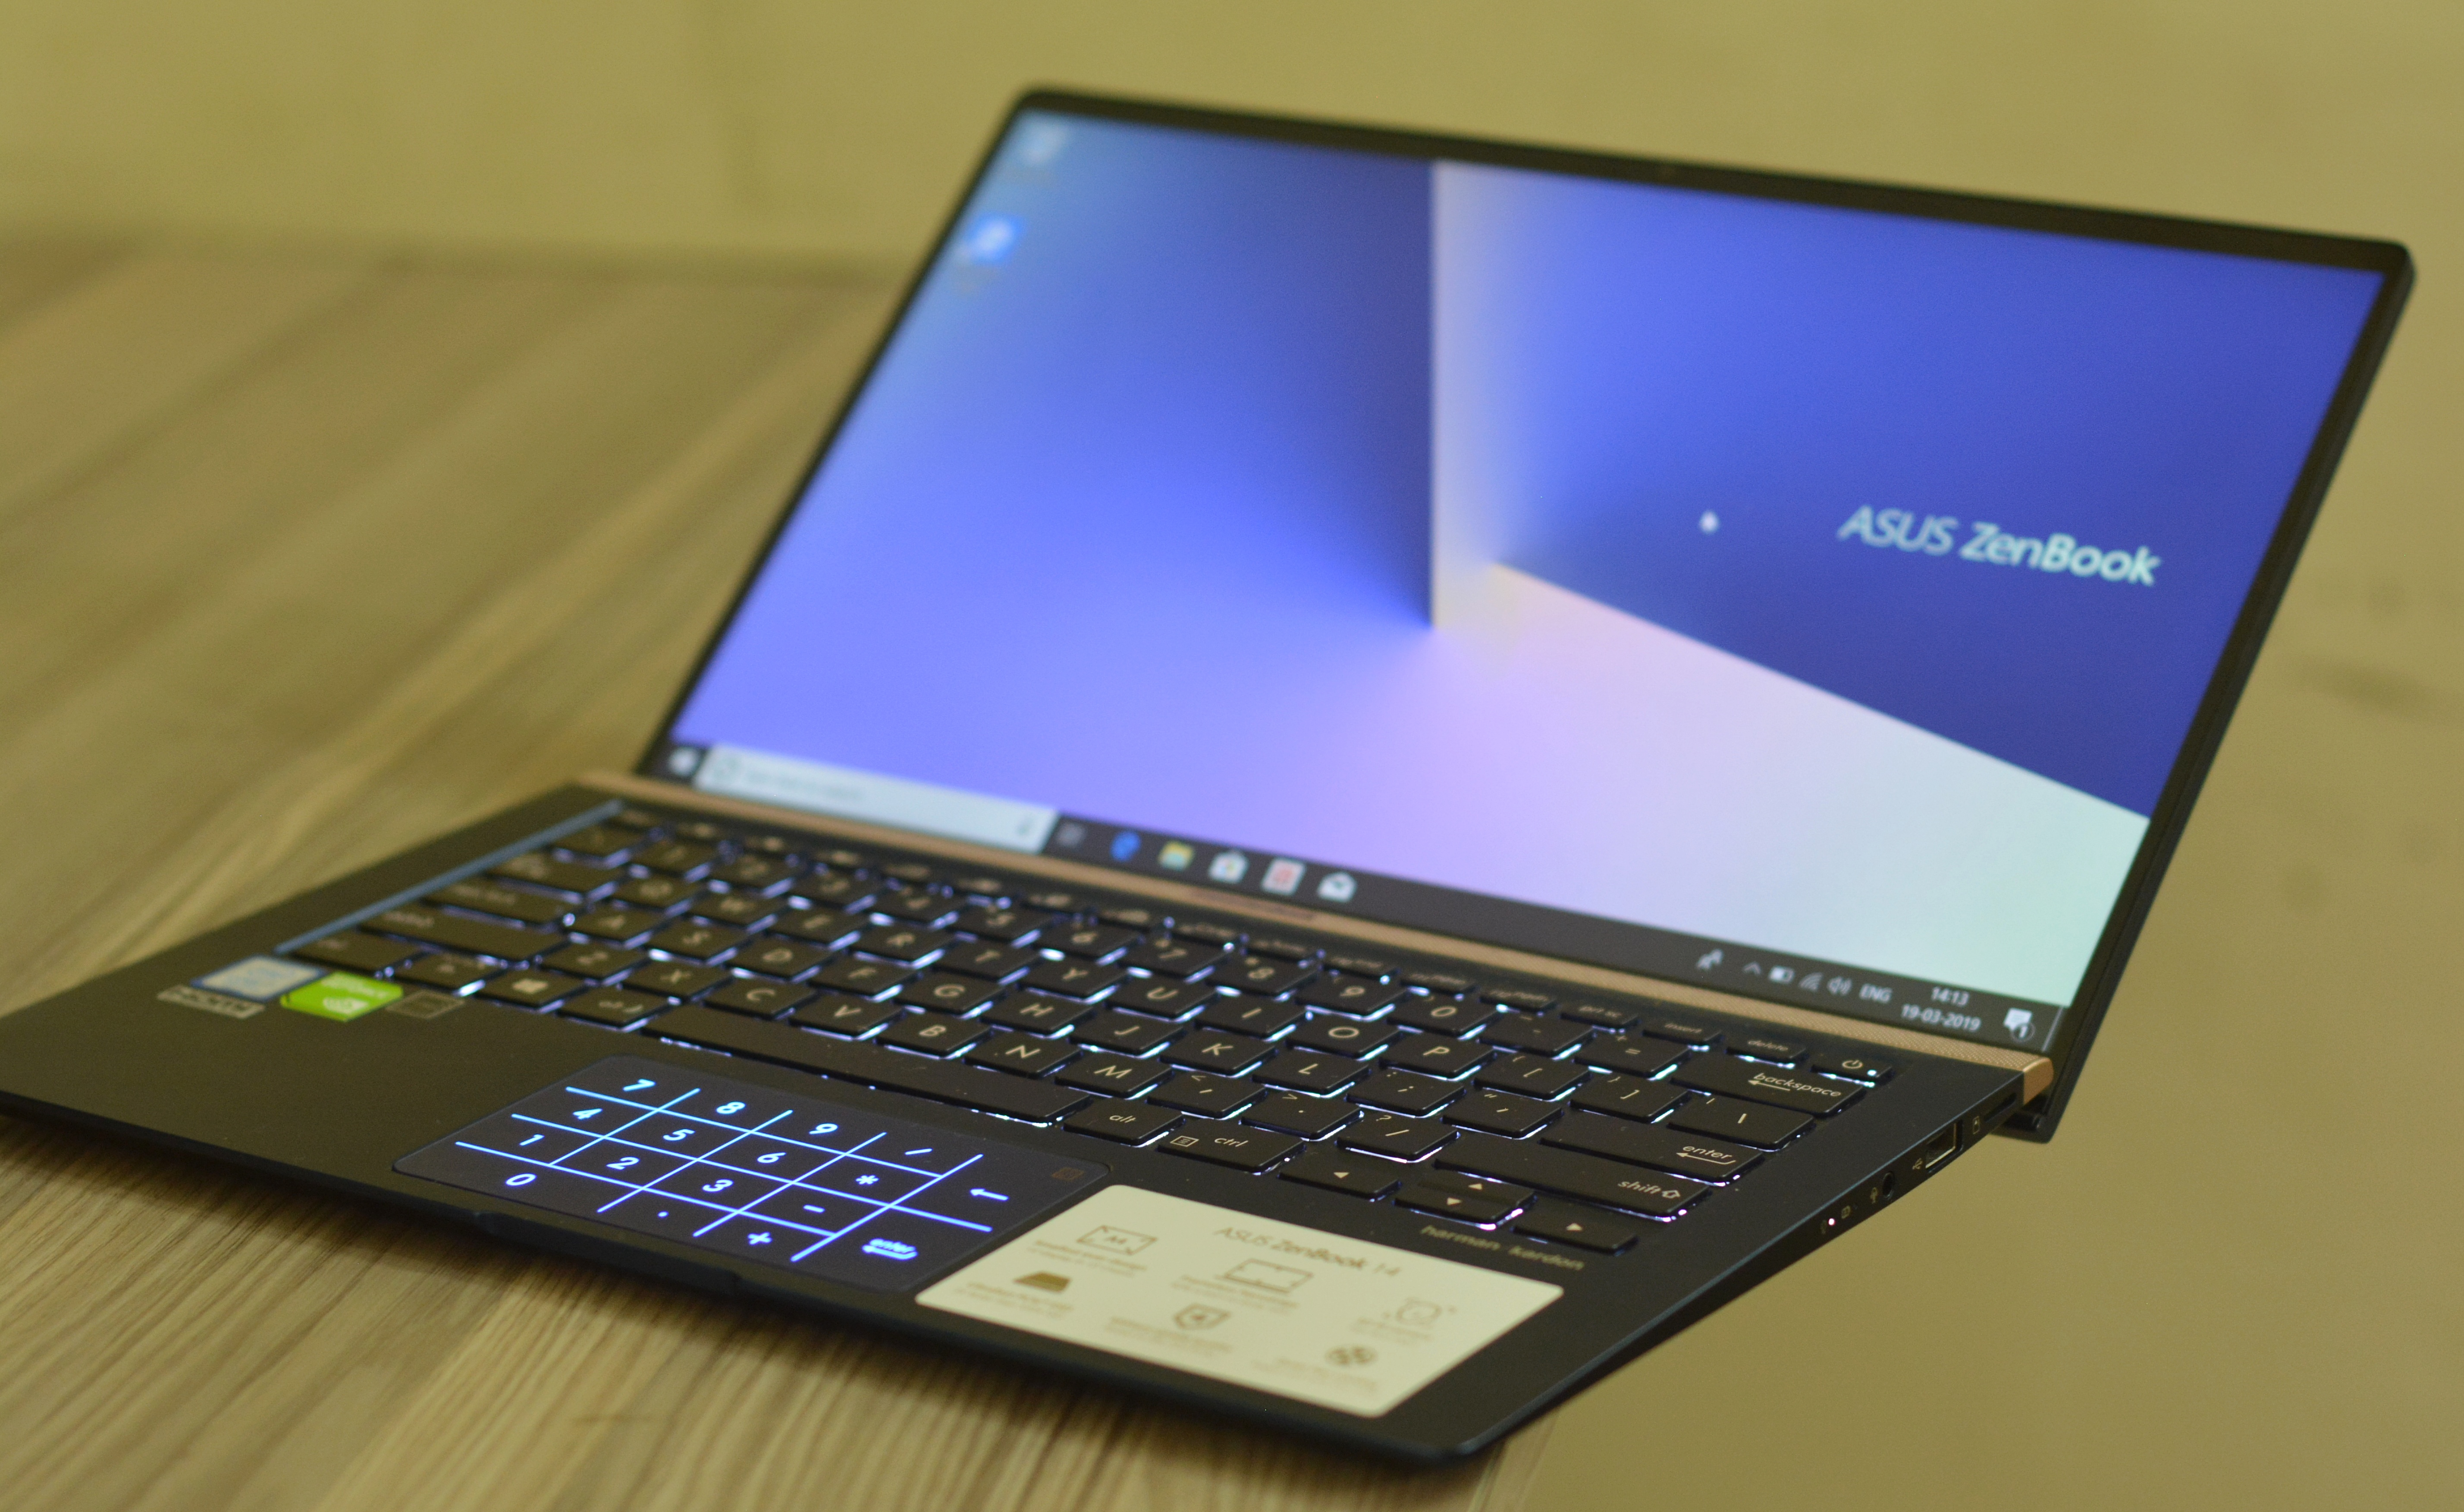 4bb4656baa527 Asus Zenbook 14 UX433F Laptop Review-The compact performer - TechUNeed